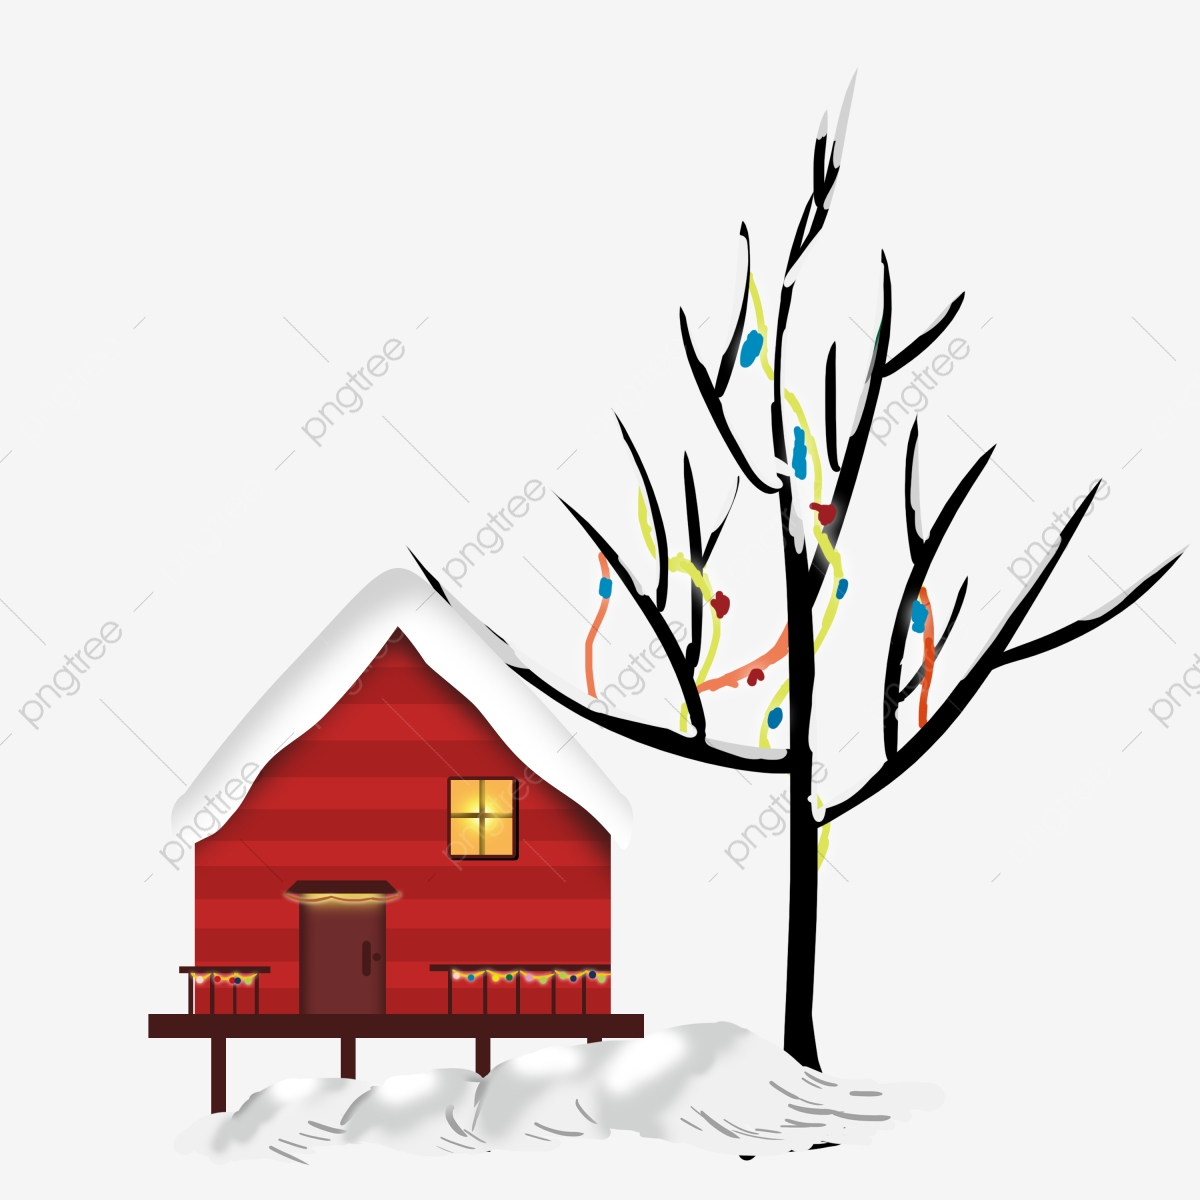 House Clip Art Black and White with Snow Falling